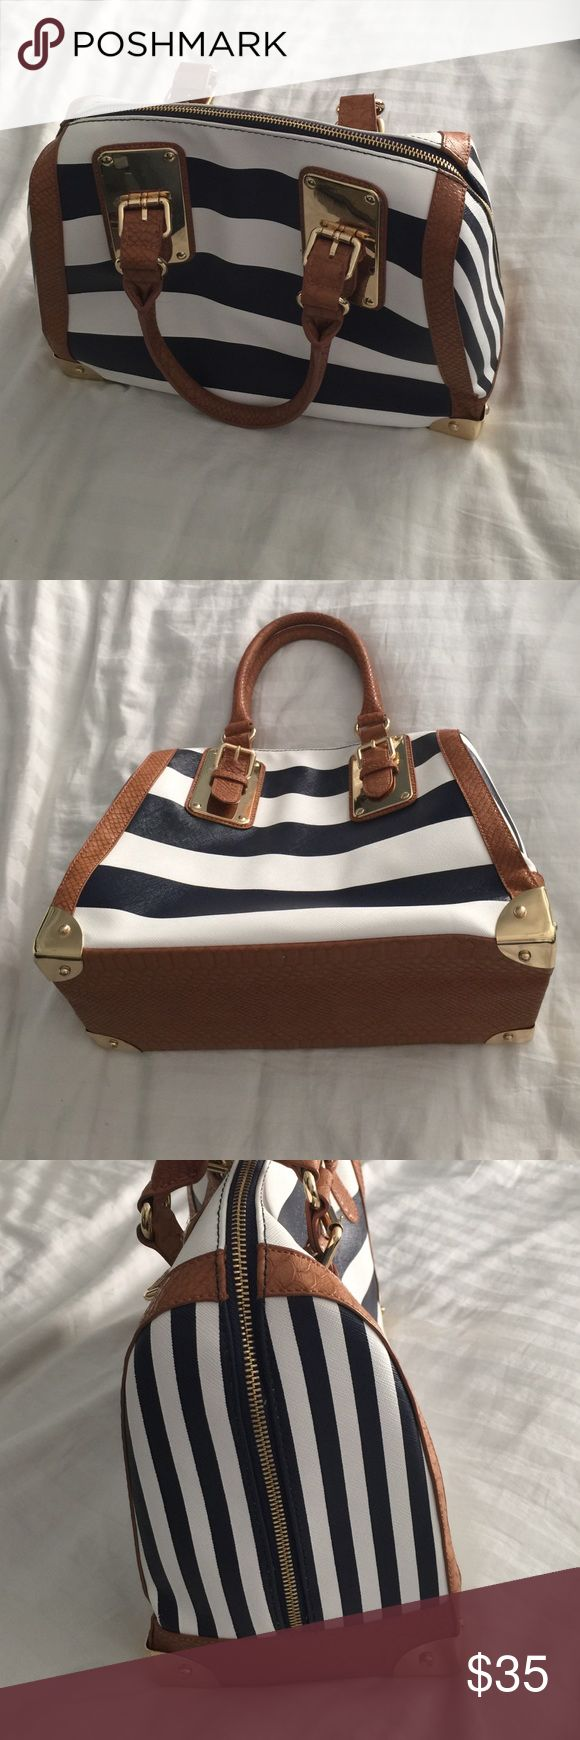 Aldo handbag Beautiful navy/white/tan stripped handbag. Gold details on the buckles and feet. Used 2 times (pre-baby and pre-diaper bag). Inside has a zipper and two side pockets for a phone. Small marking ok the gold feet from being placed on the ground. Faux leather material. Aldo Bags